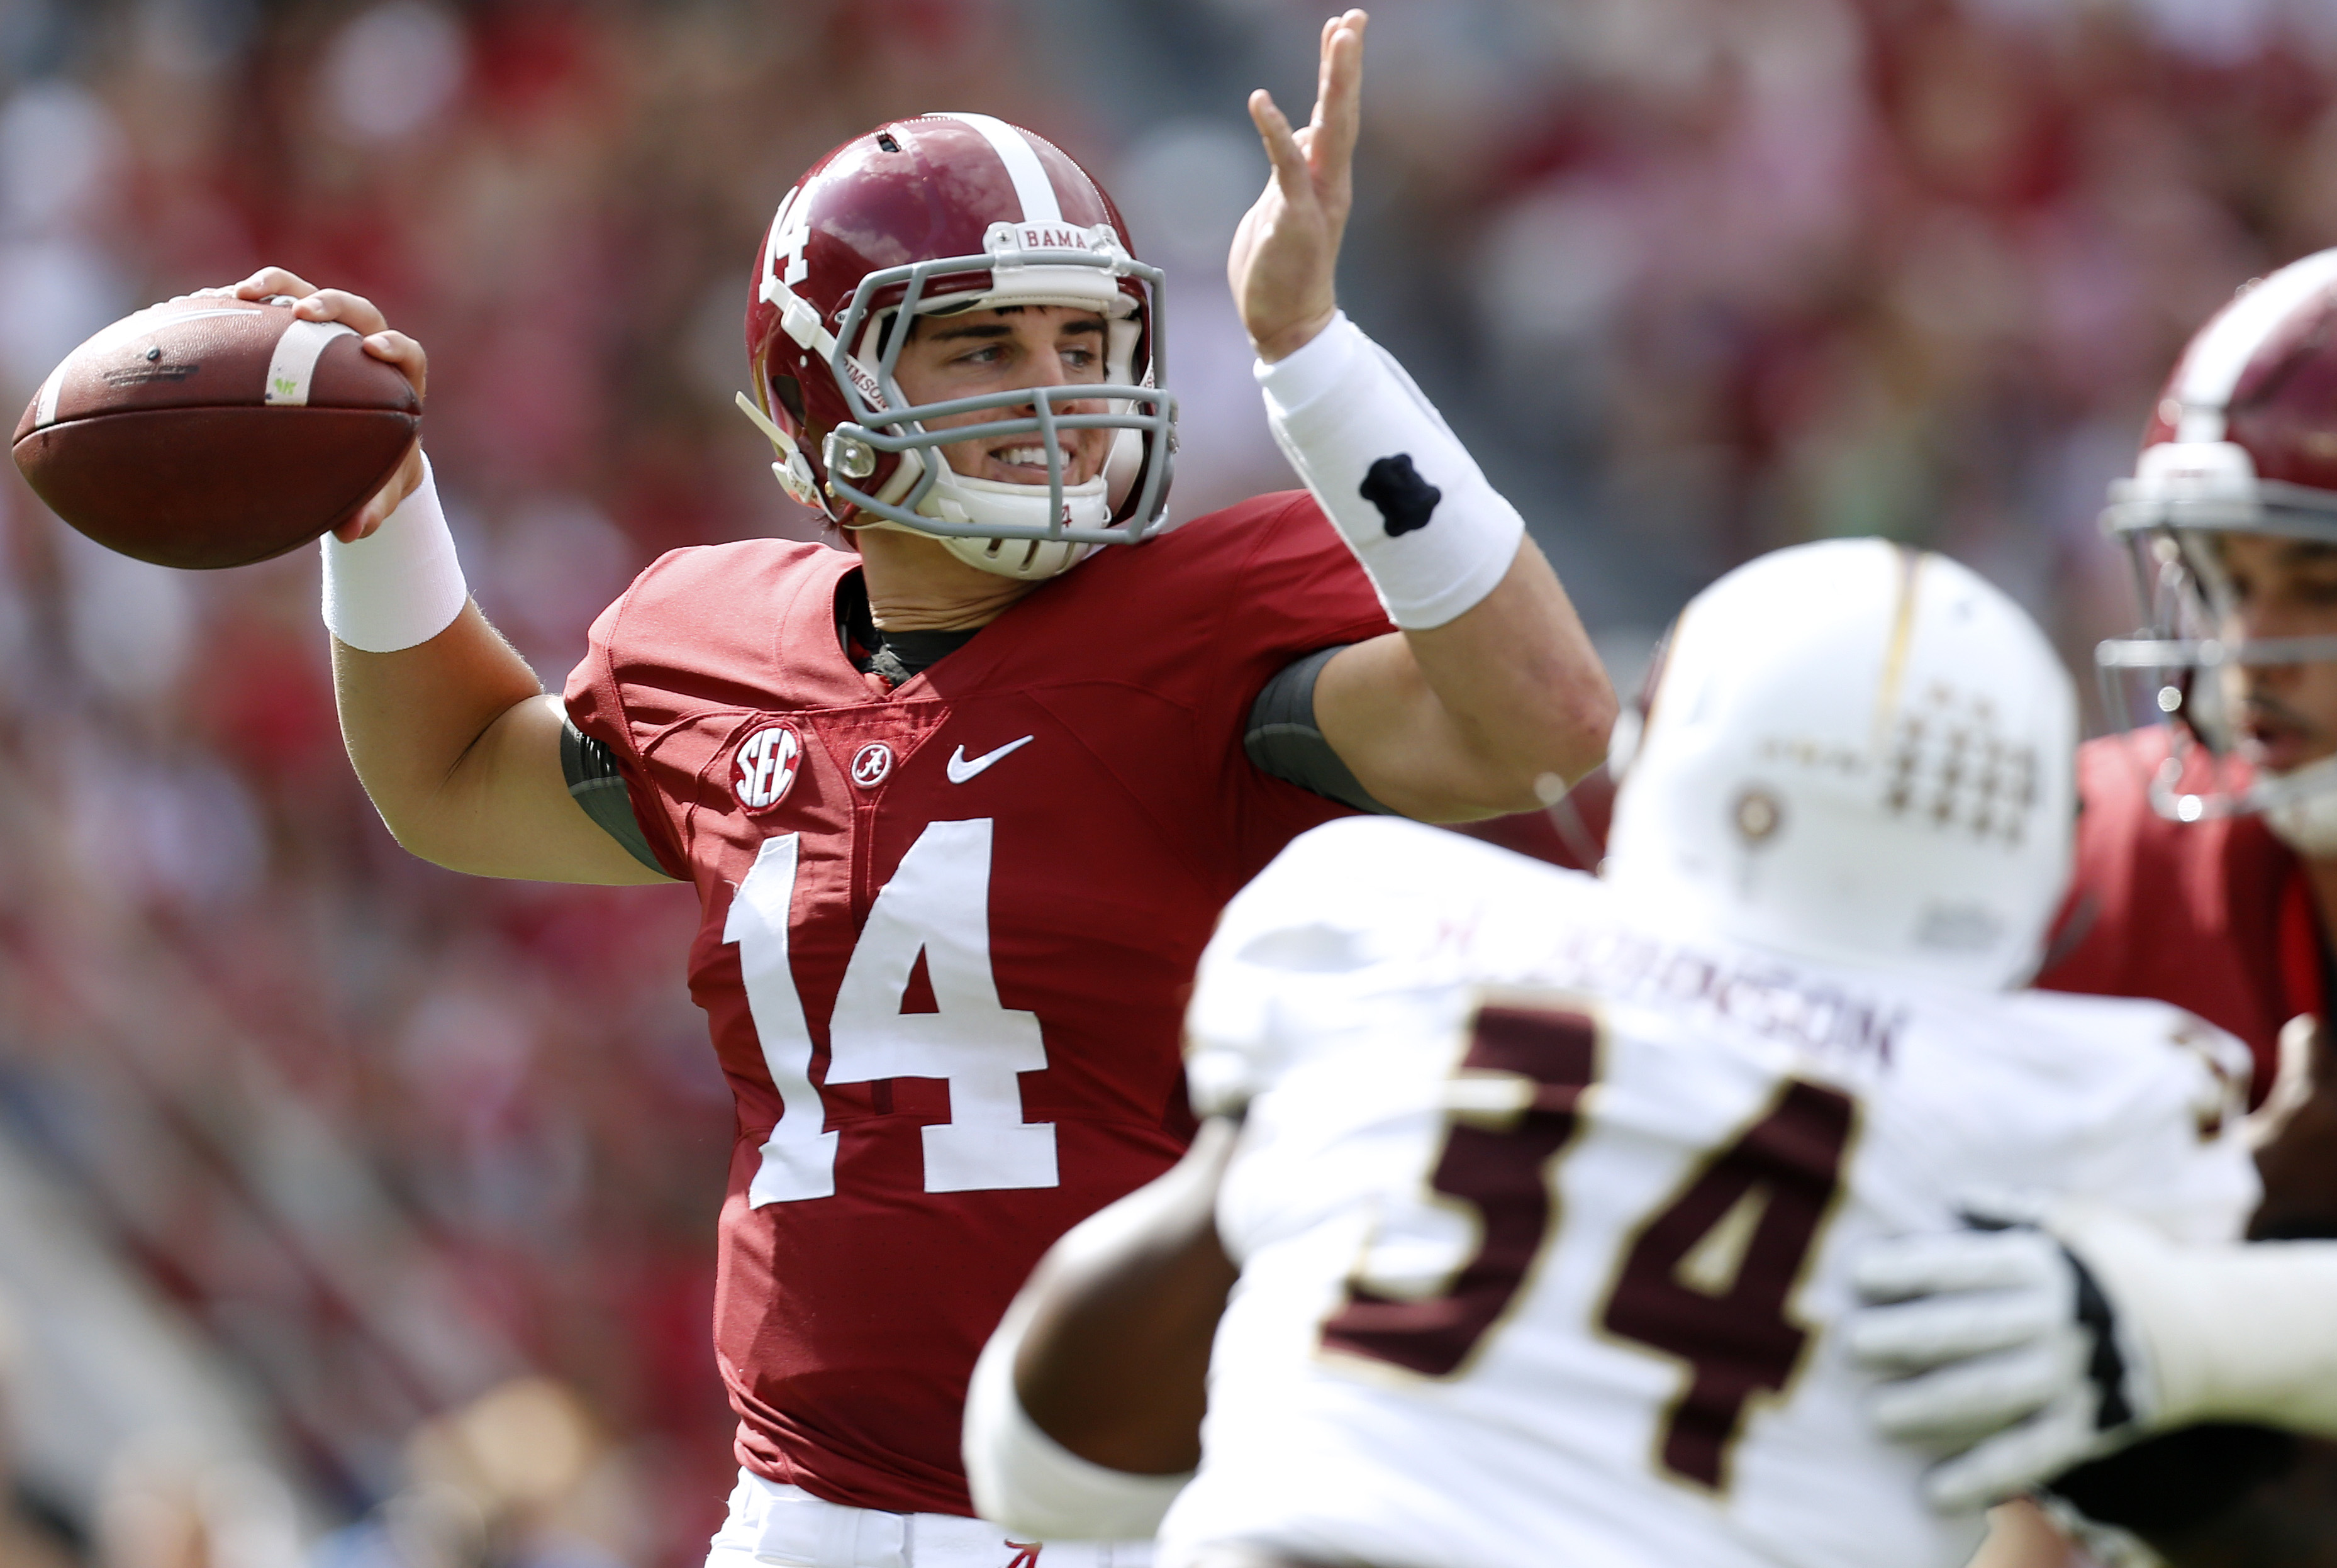 FILE - In this Sept. 26, 2015, file photo, Alabama quarterback Jake Coker (14) throws a pass during the first half of an NCAA college football game against Louisiana Monroe in Tuscaloosa, Ala. In Athens, Georgia, the Bulldogs (4-0, 2-0) host No. 13 Alabam